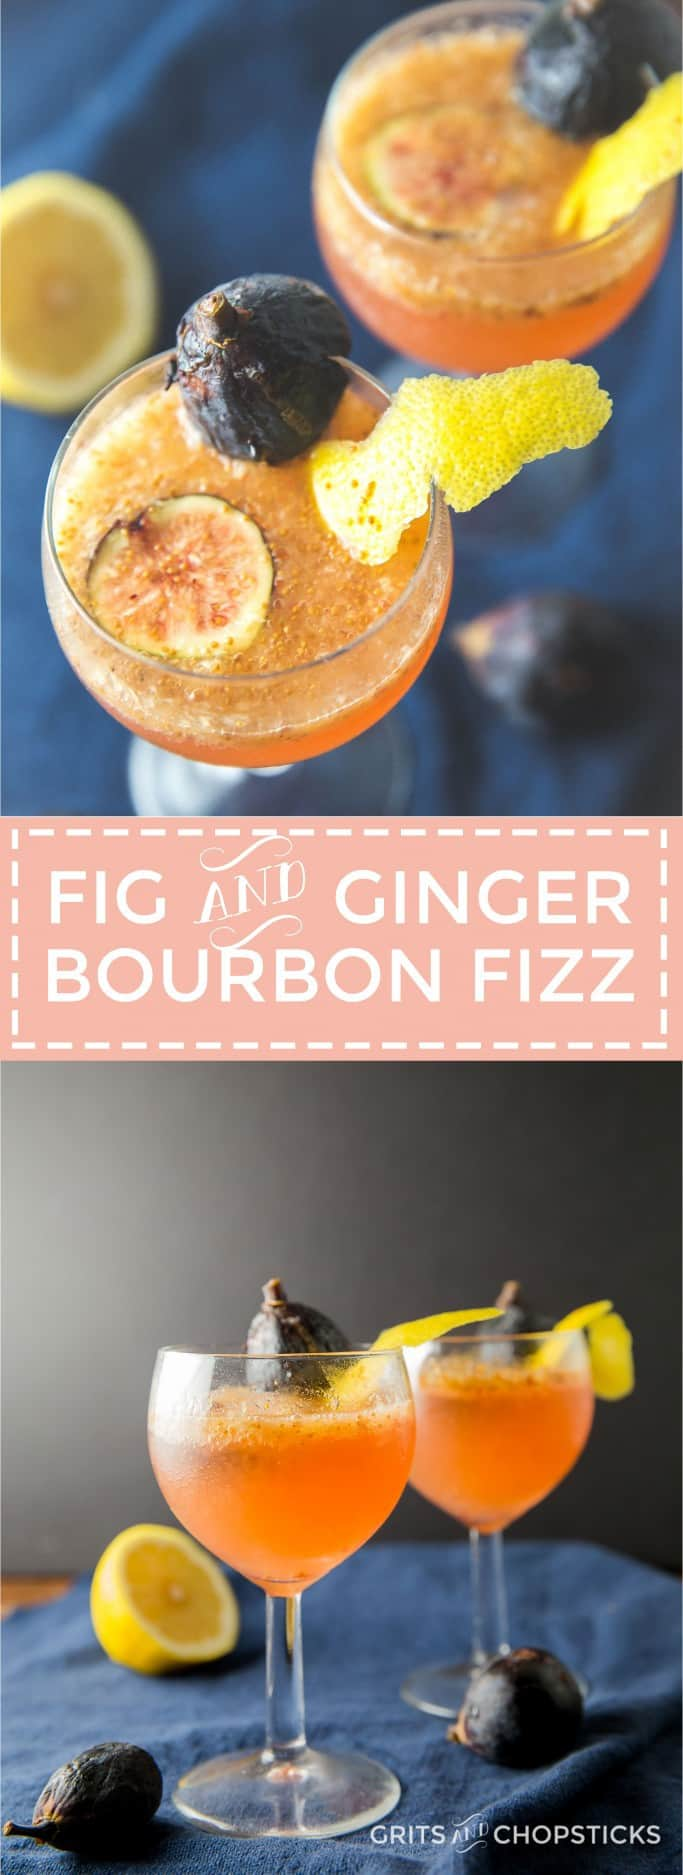 Ginger infused bourbon made by Virgil Kaine makes this fig and ginger bourbon fizz the perfect fall cocktail